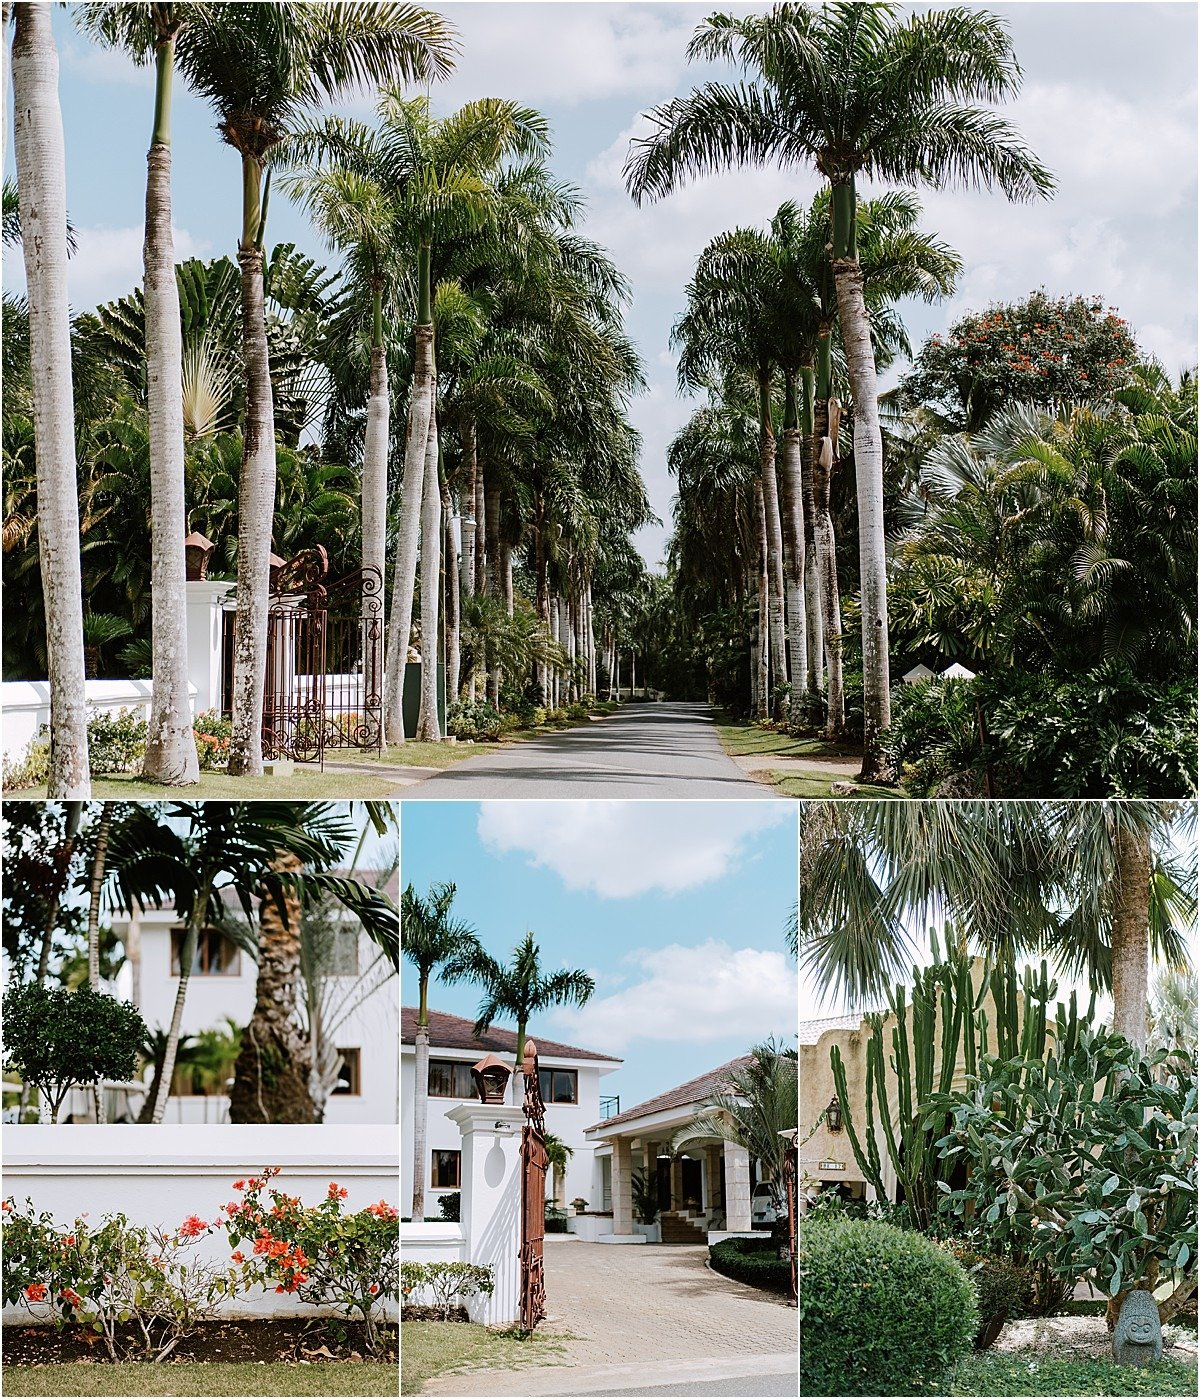 entrance to campos dominican republic